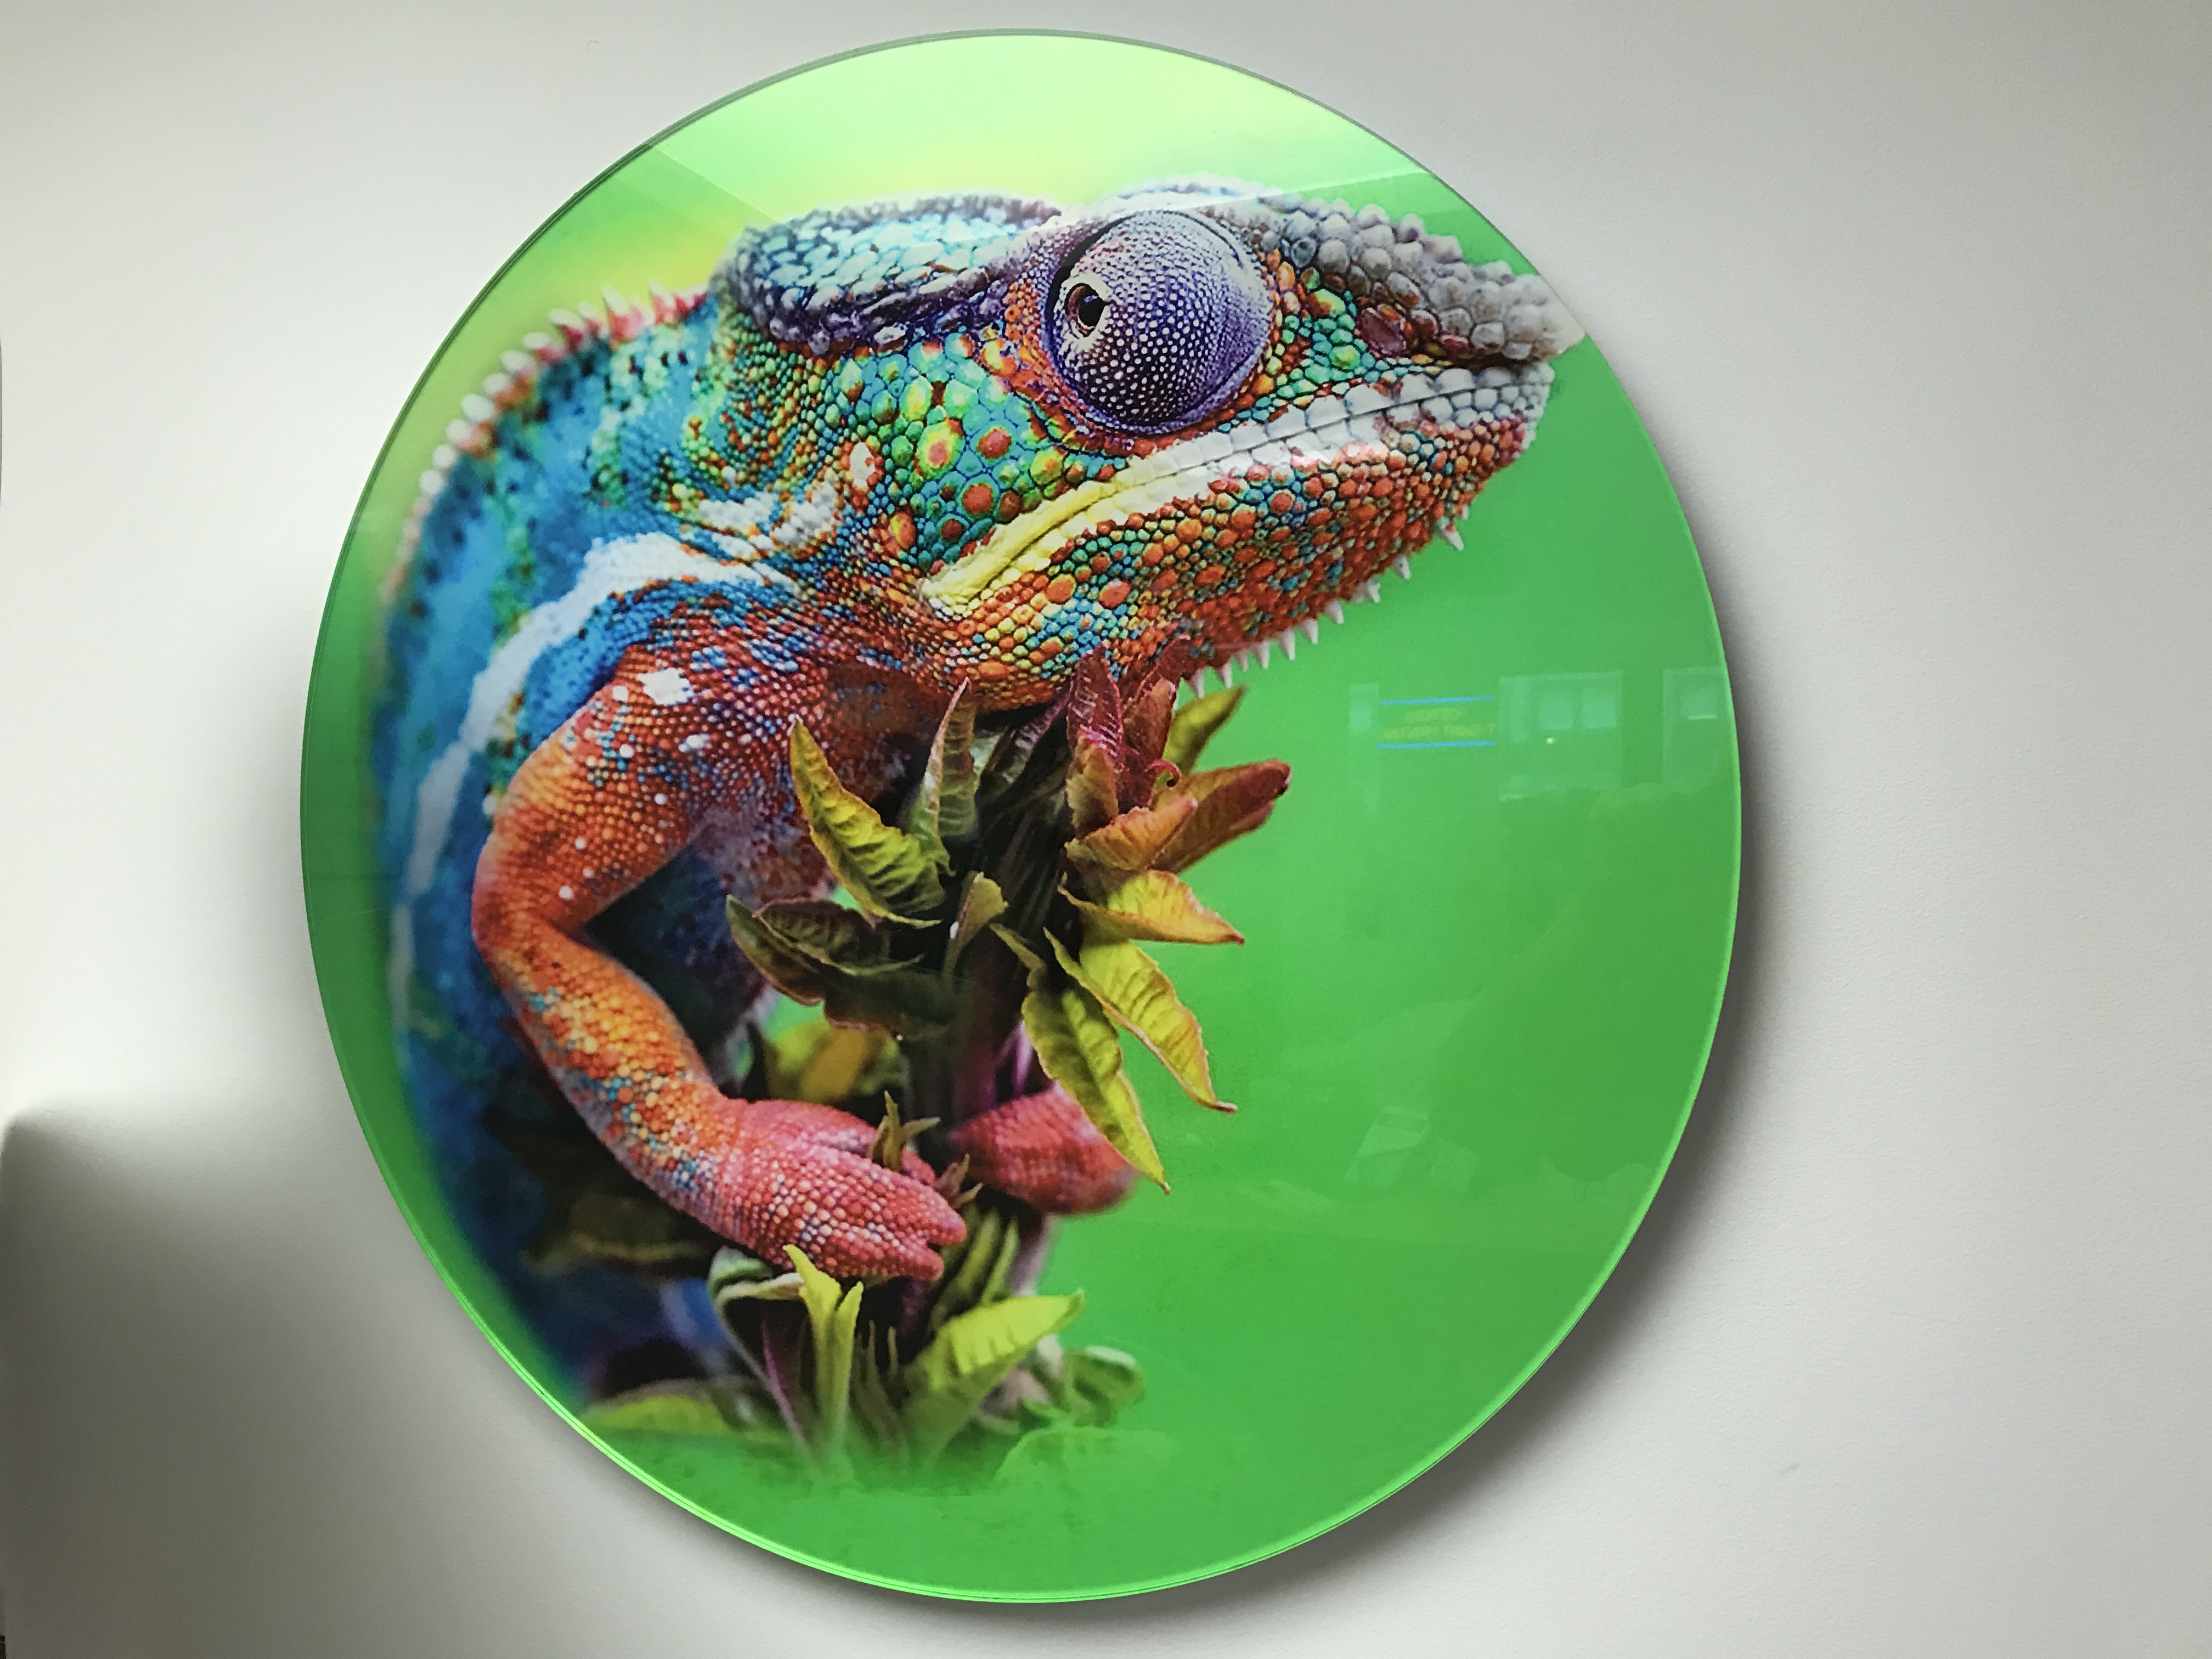 Circular plexiglass with Epson color photo